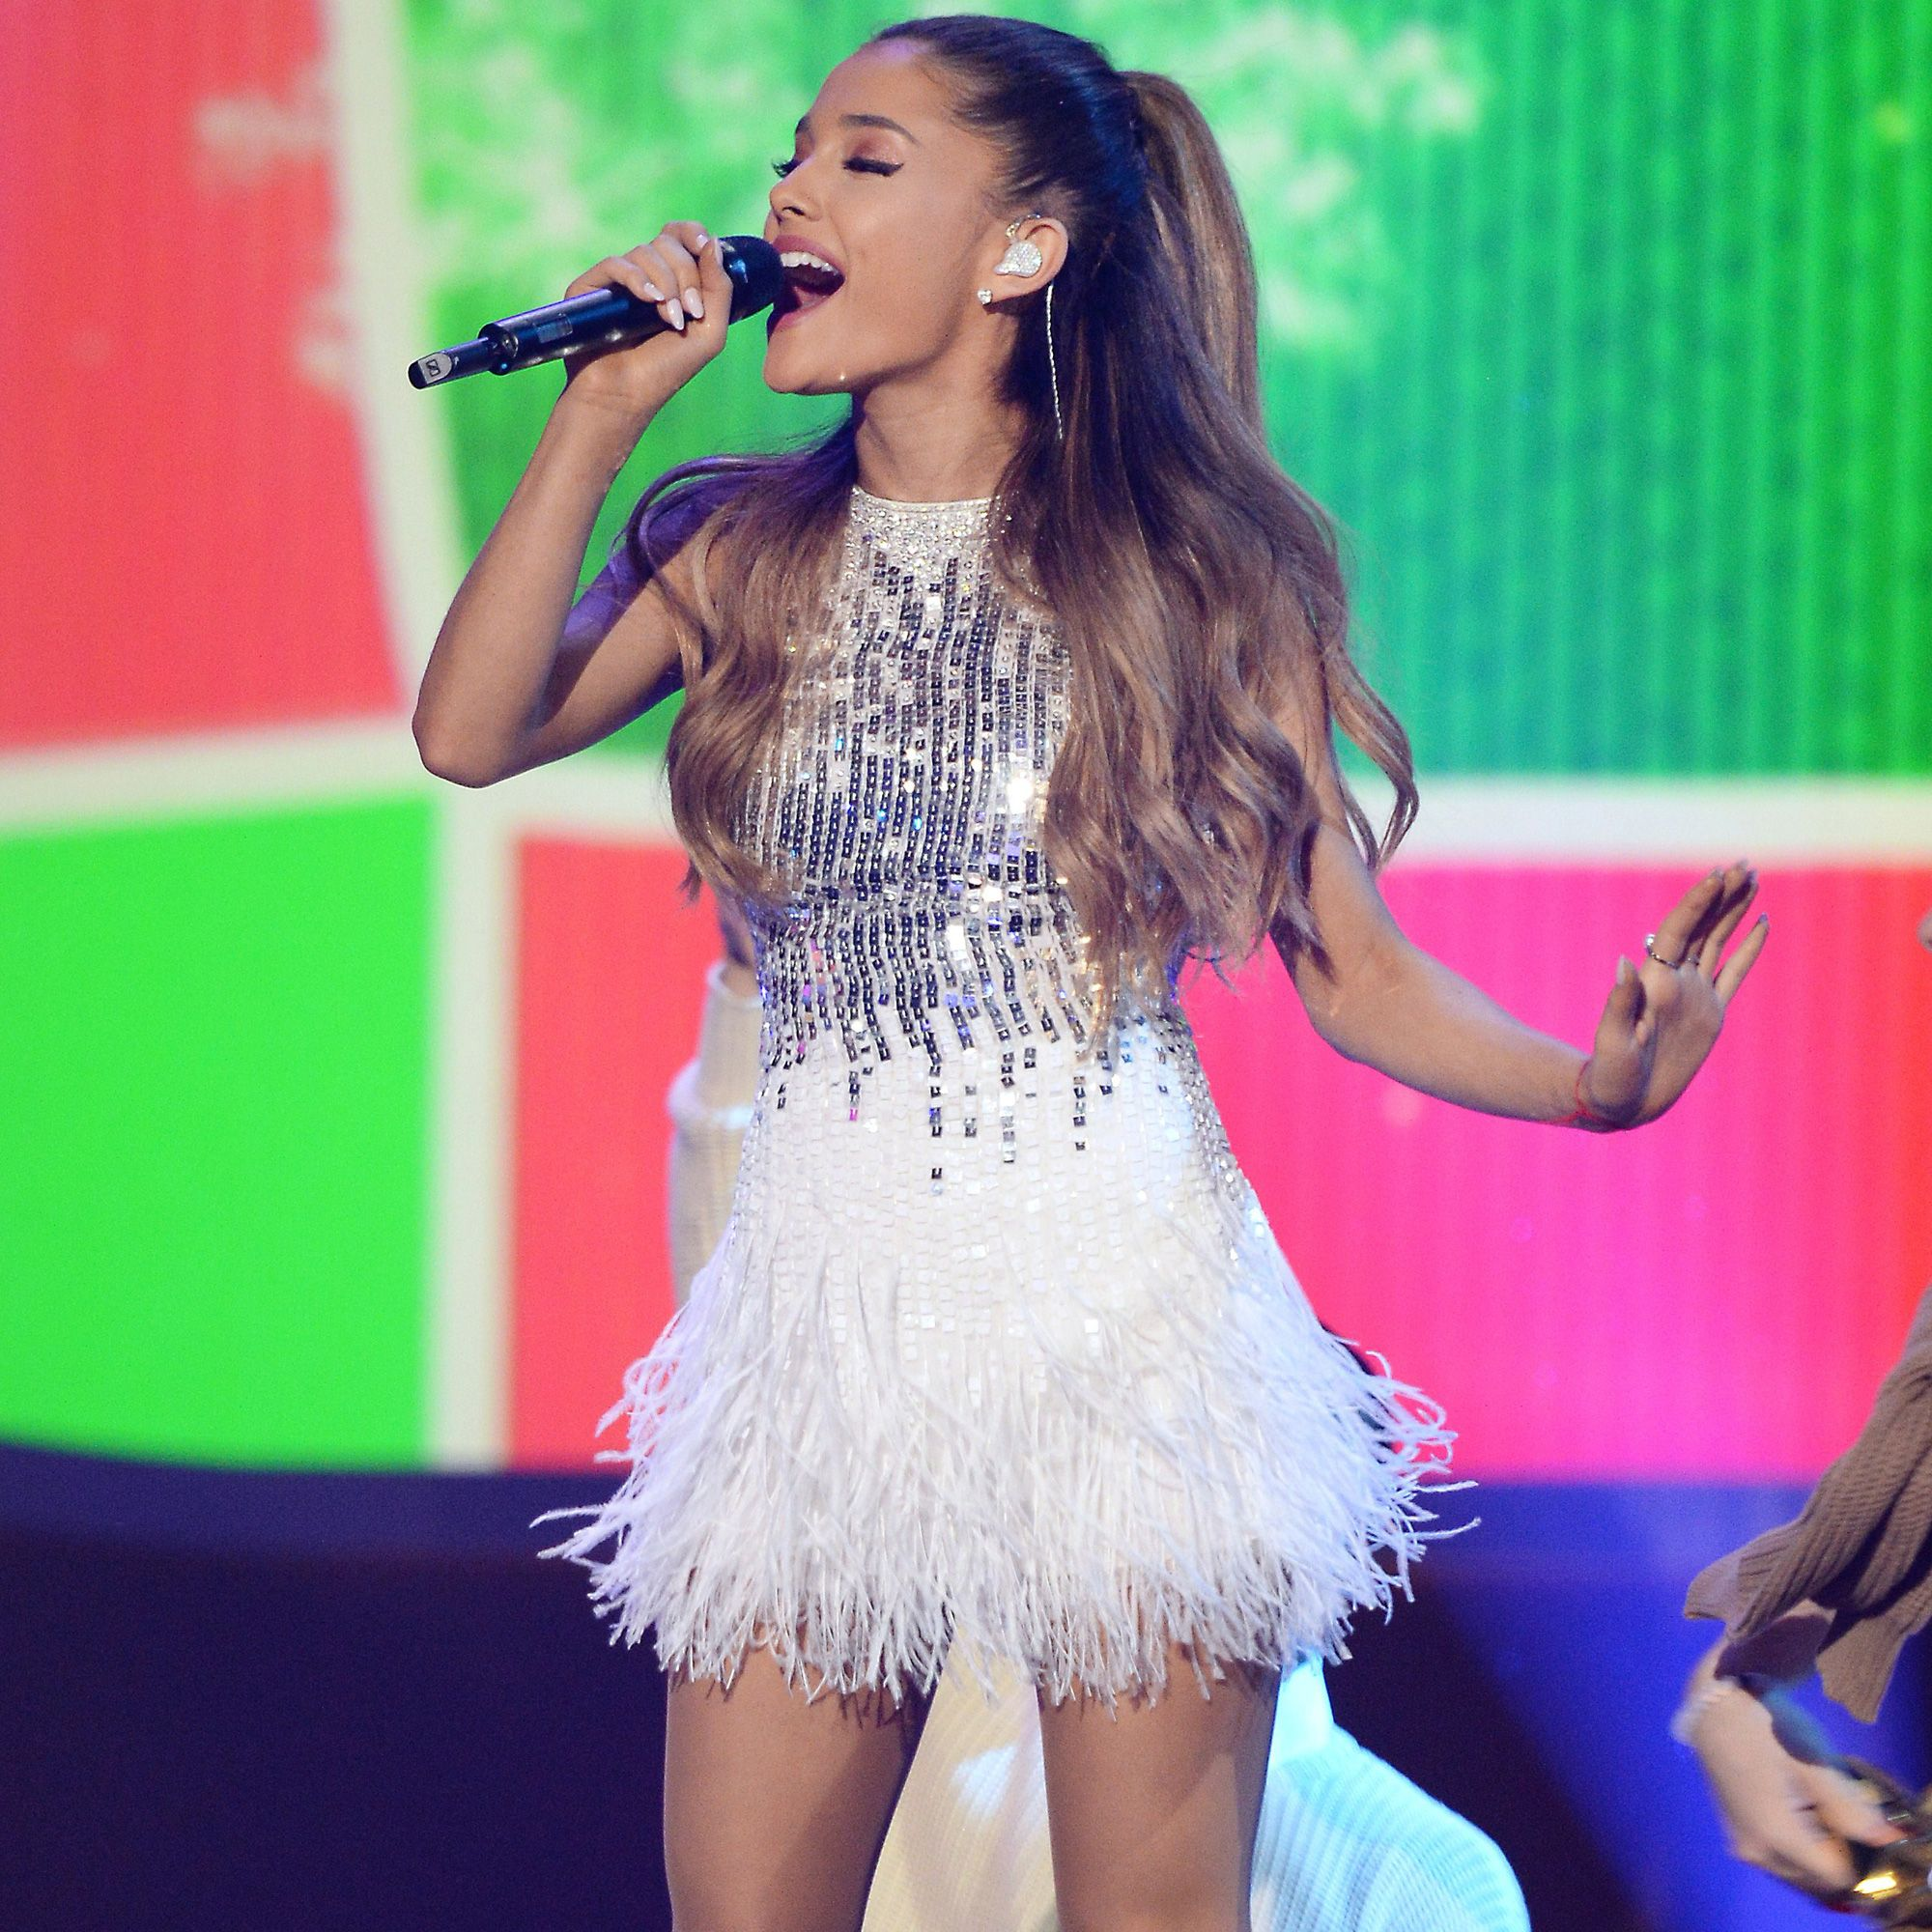 Ariana Grande performs at the taping of <i>A Very Grammy Christmas</i> at the Shrine Auditorium in Los Angeles on Nov. 18, 2014.